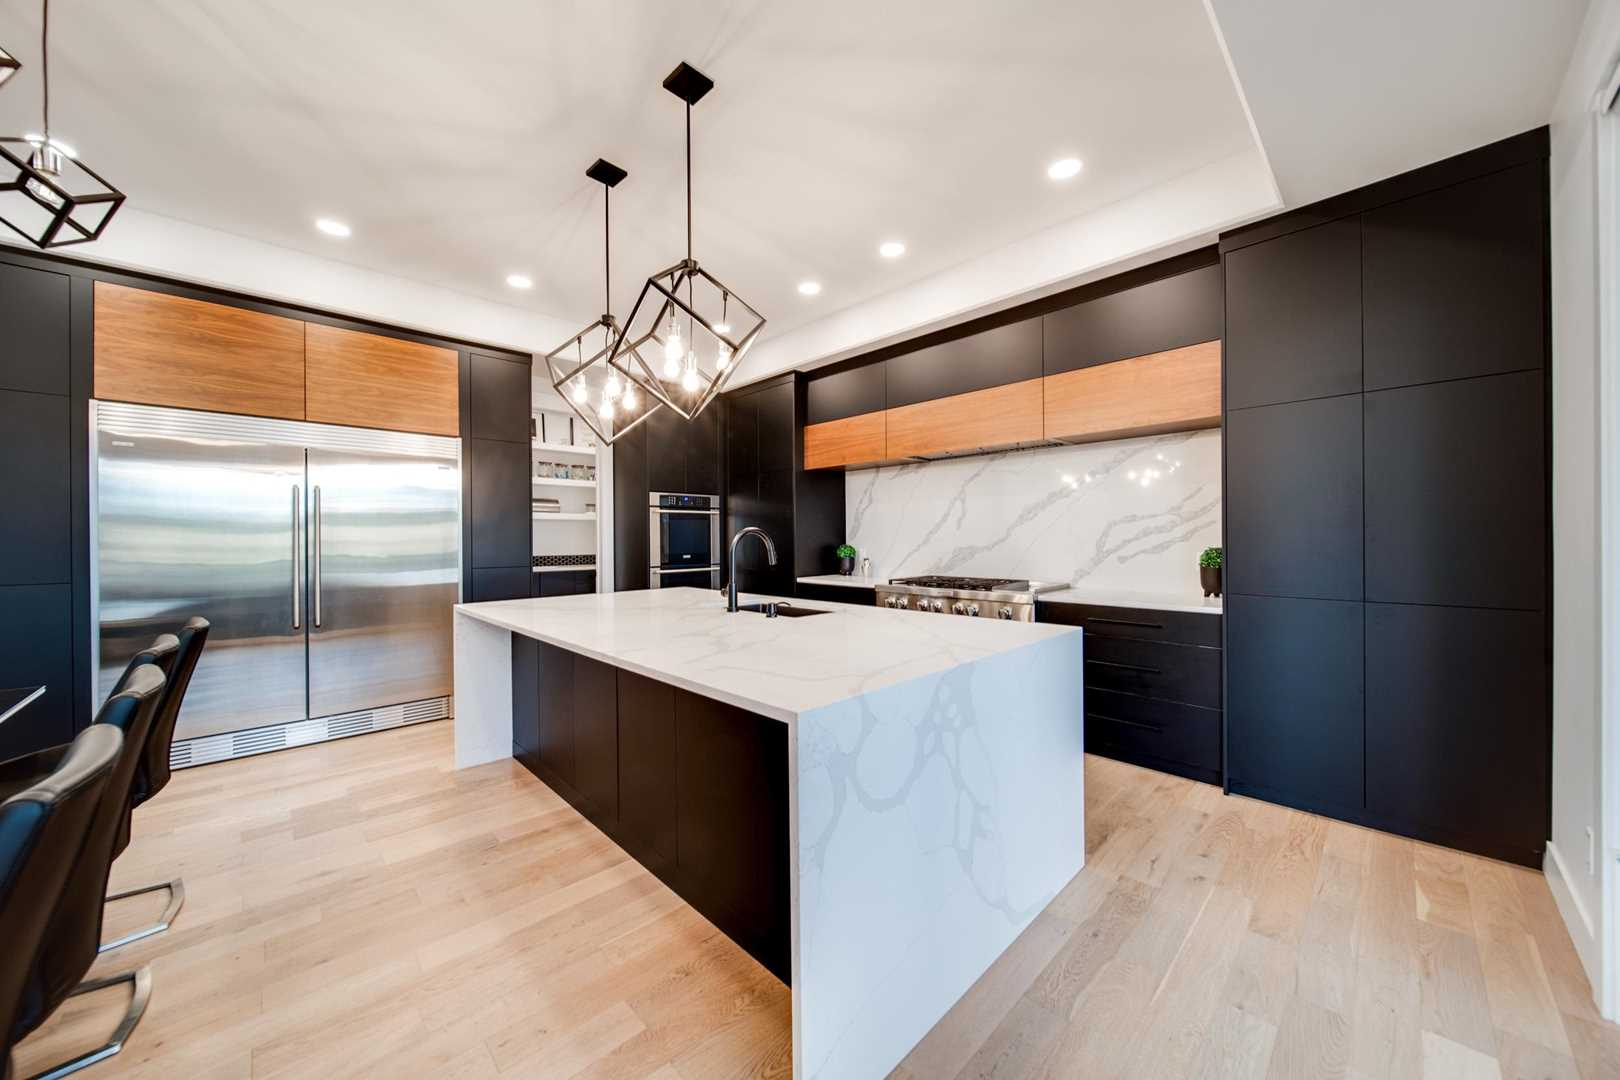 Kitchen with white ceiling and walls, light hardwood floor; black cupboards with white backsplash; white marble waterfall island with two hanging geometric lights above